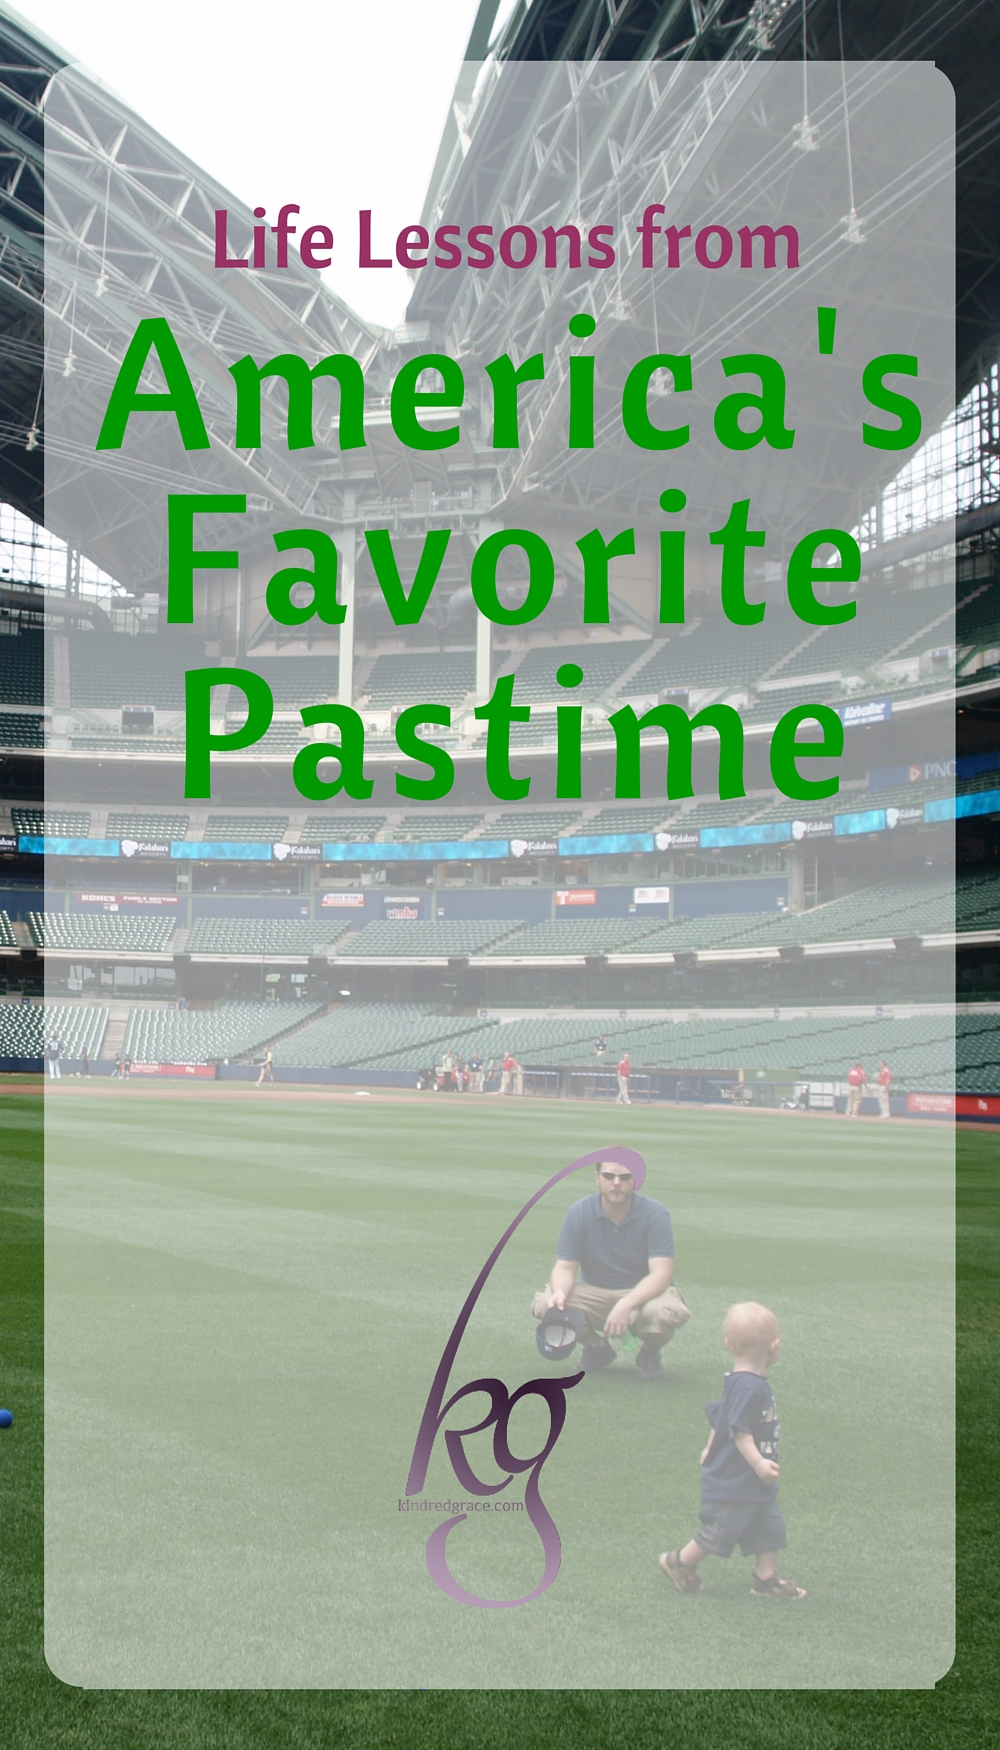 Life Lessons from America's Favorite Pastime via @KindredGrace